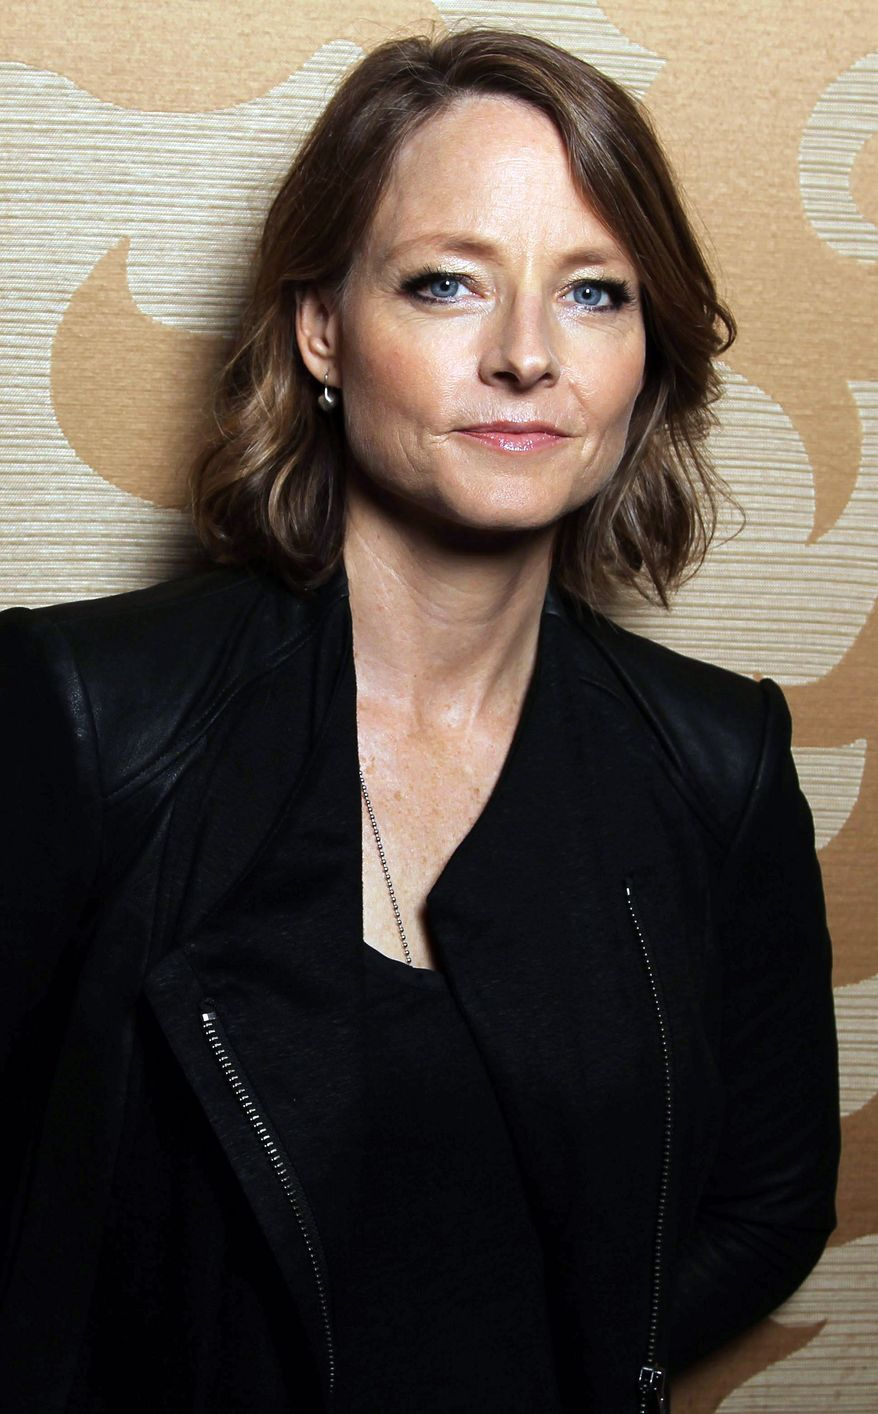 Jodie Foster (AP photo)